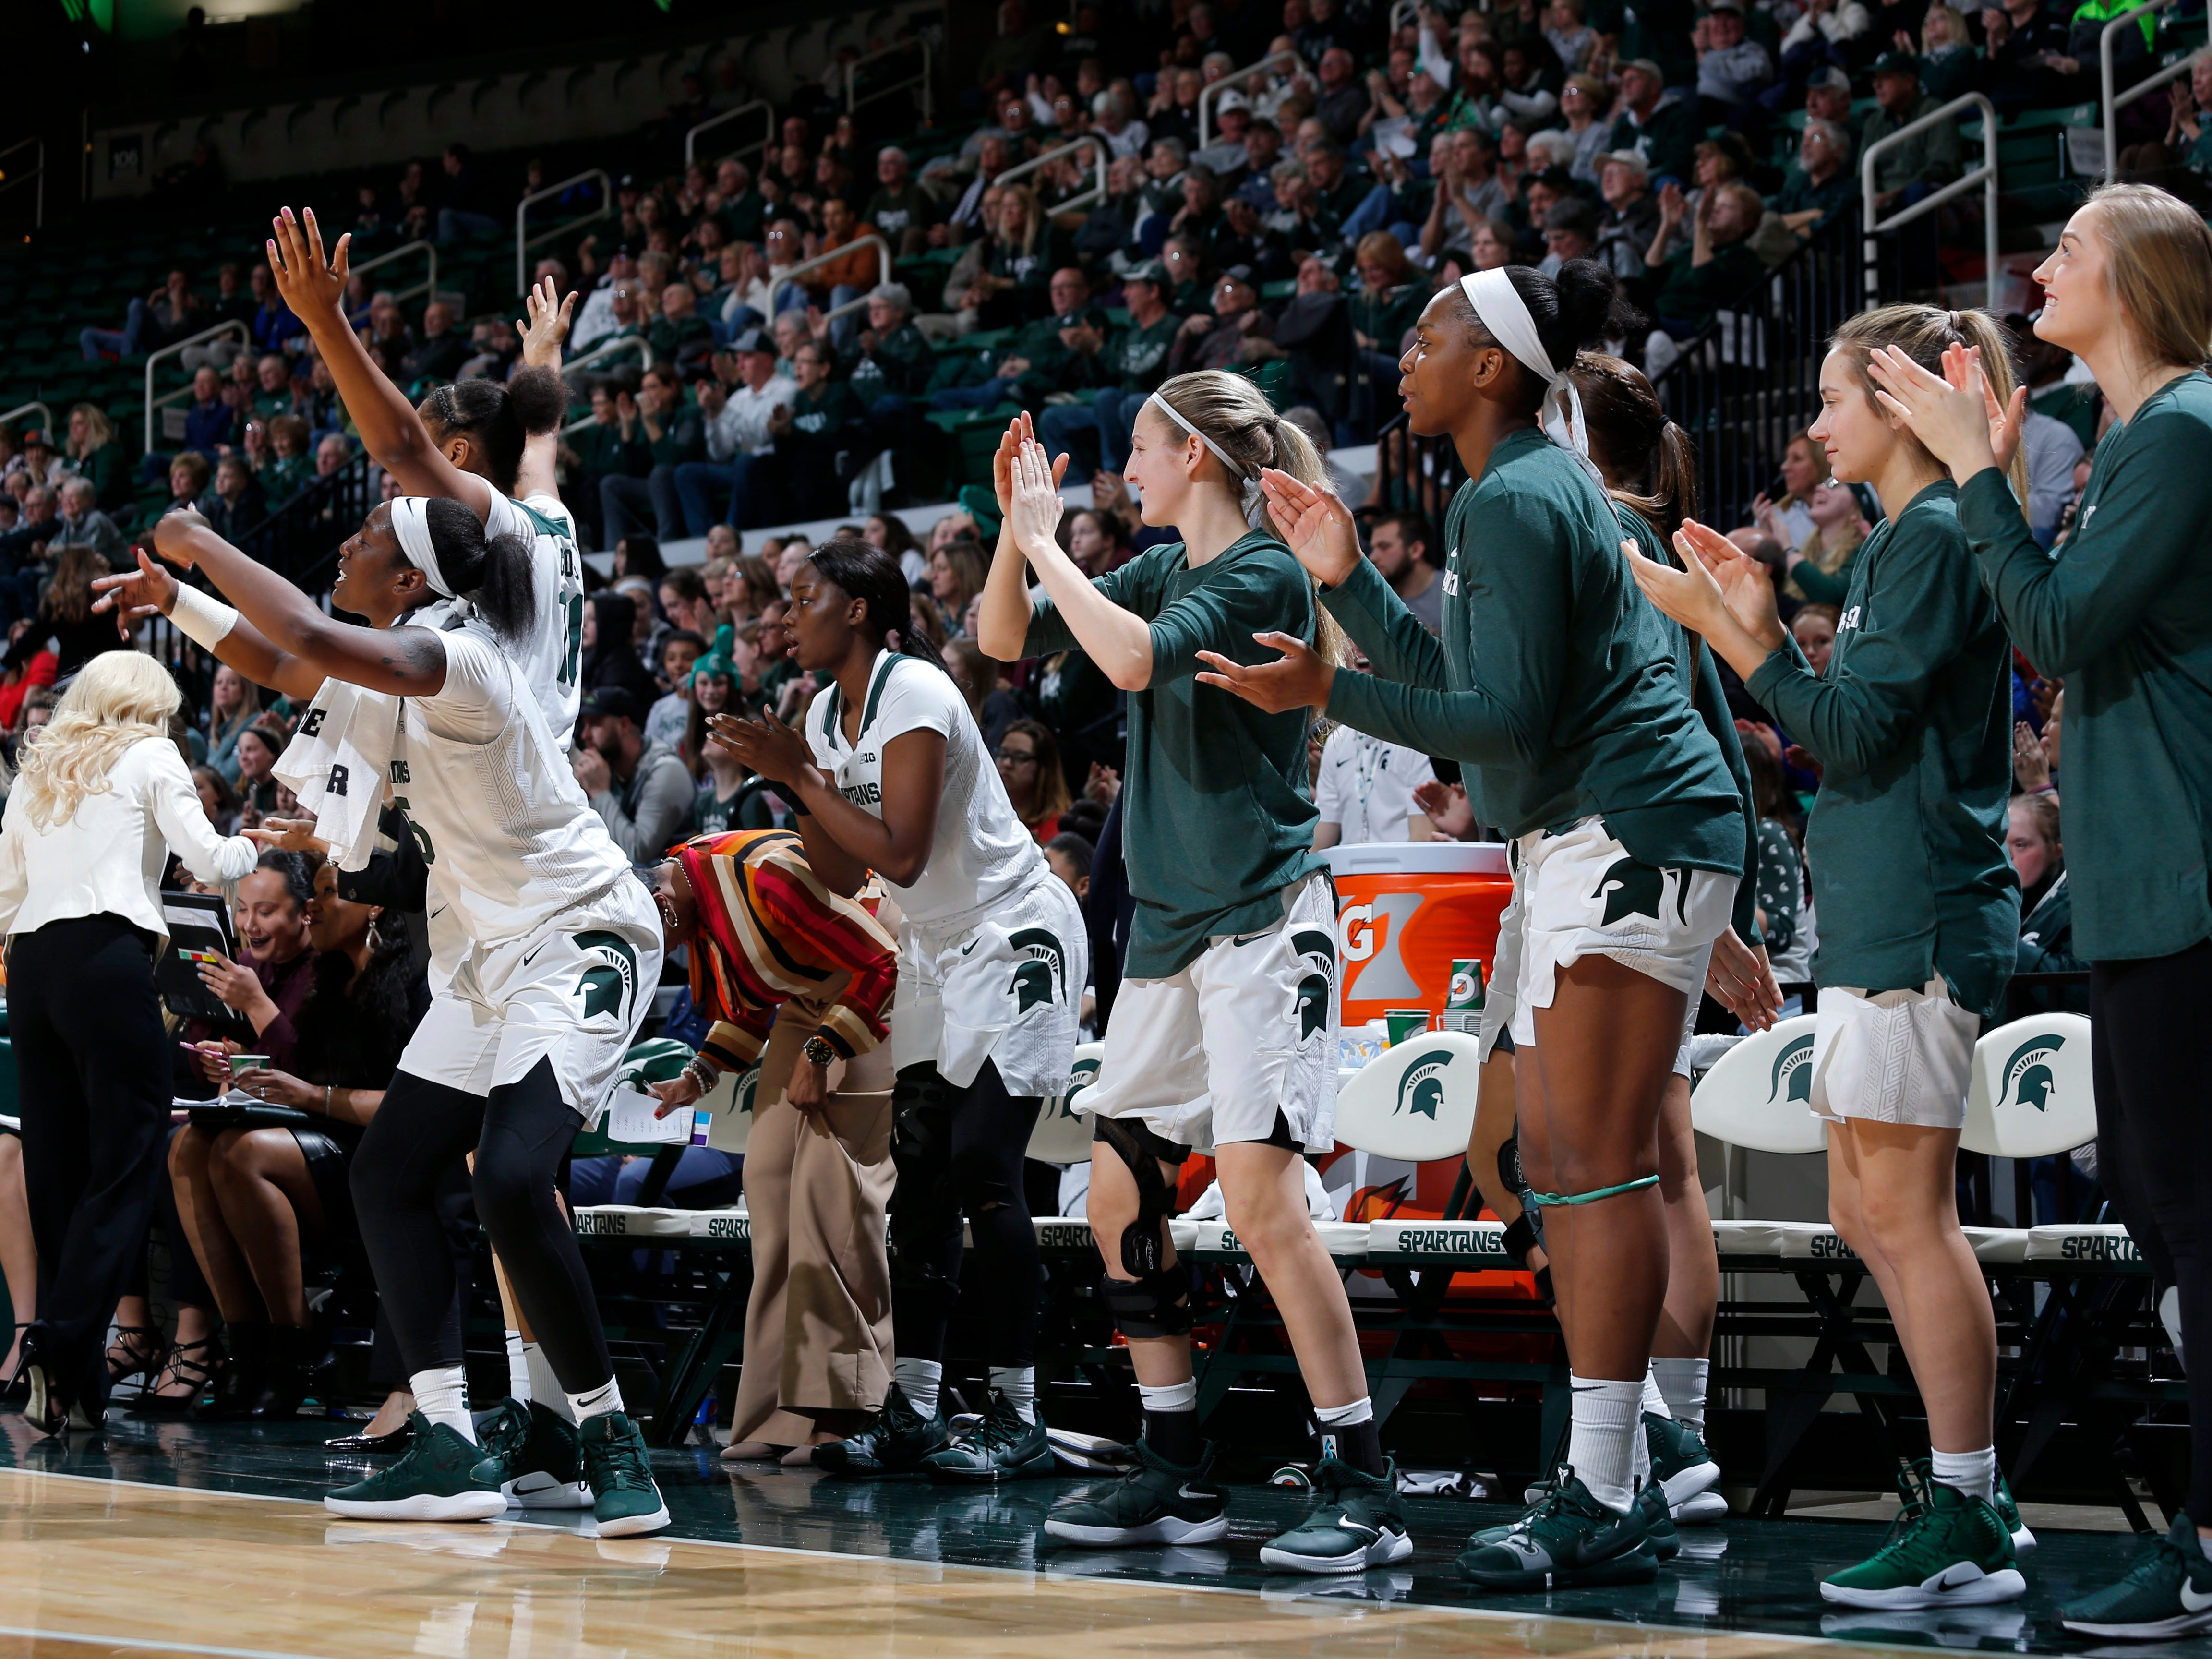 Michigan State's bench celebrates against Maryland, Thursday, Jan. 17, 2019, in East Lansing, Mich.